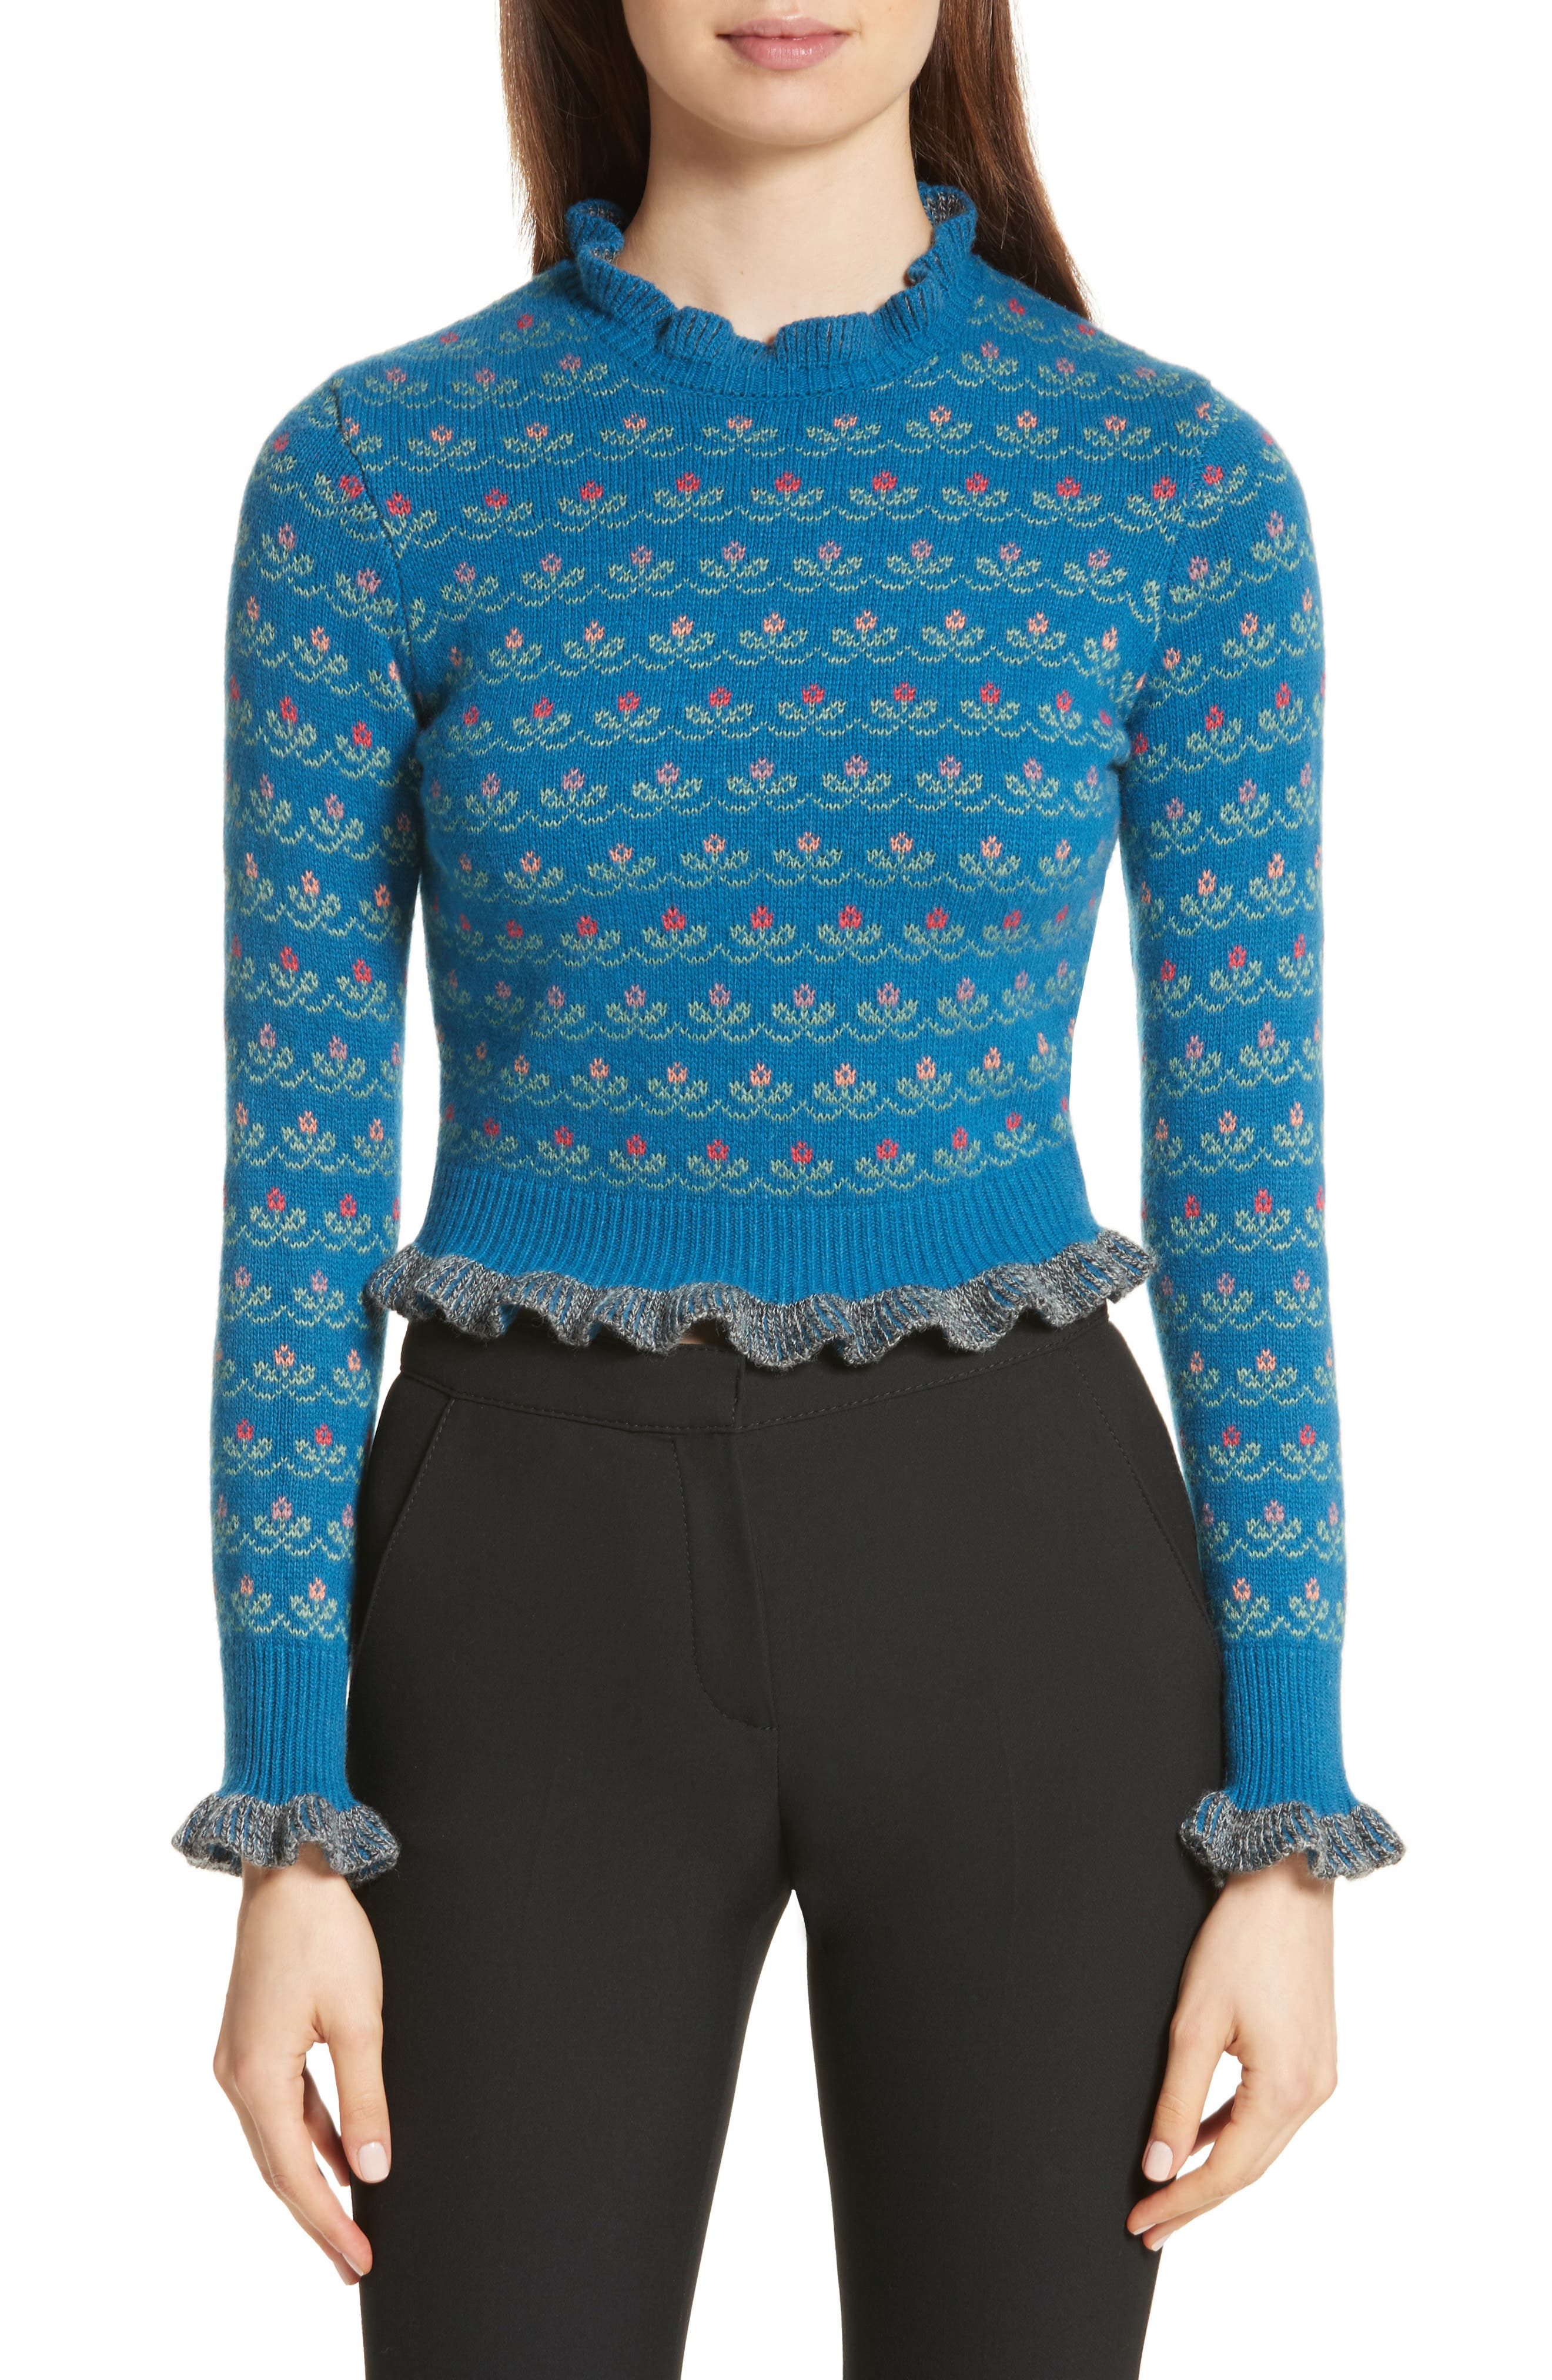 Alternate Image 1 Selected - RED Valentino Floral Jacquard Carded Wool Blend Sweater